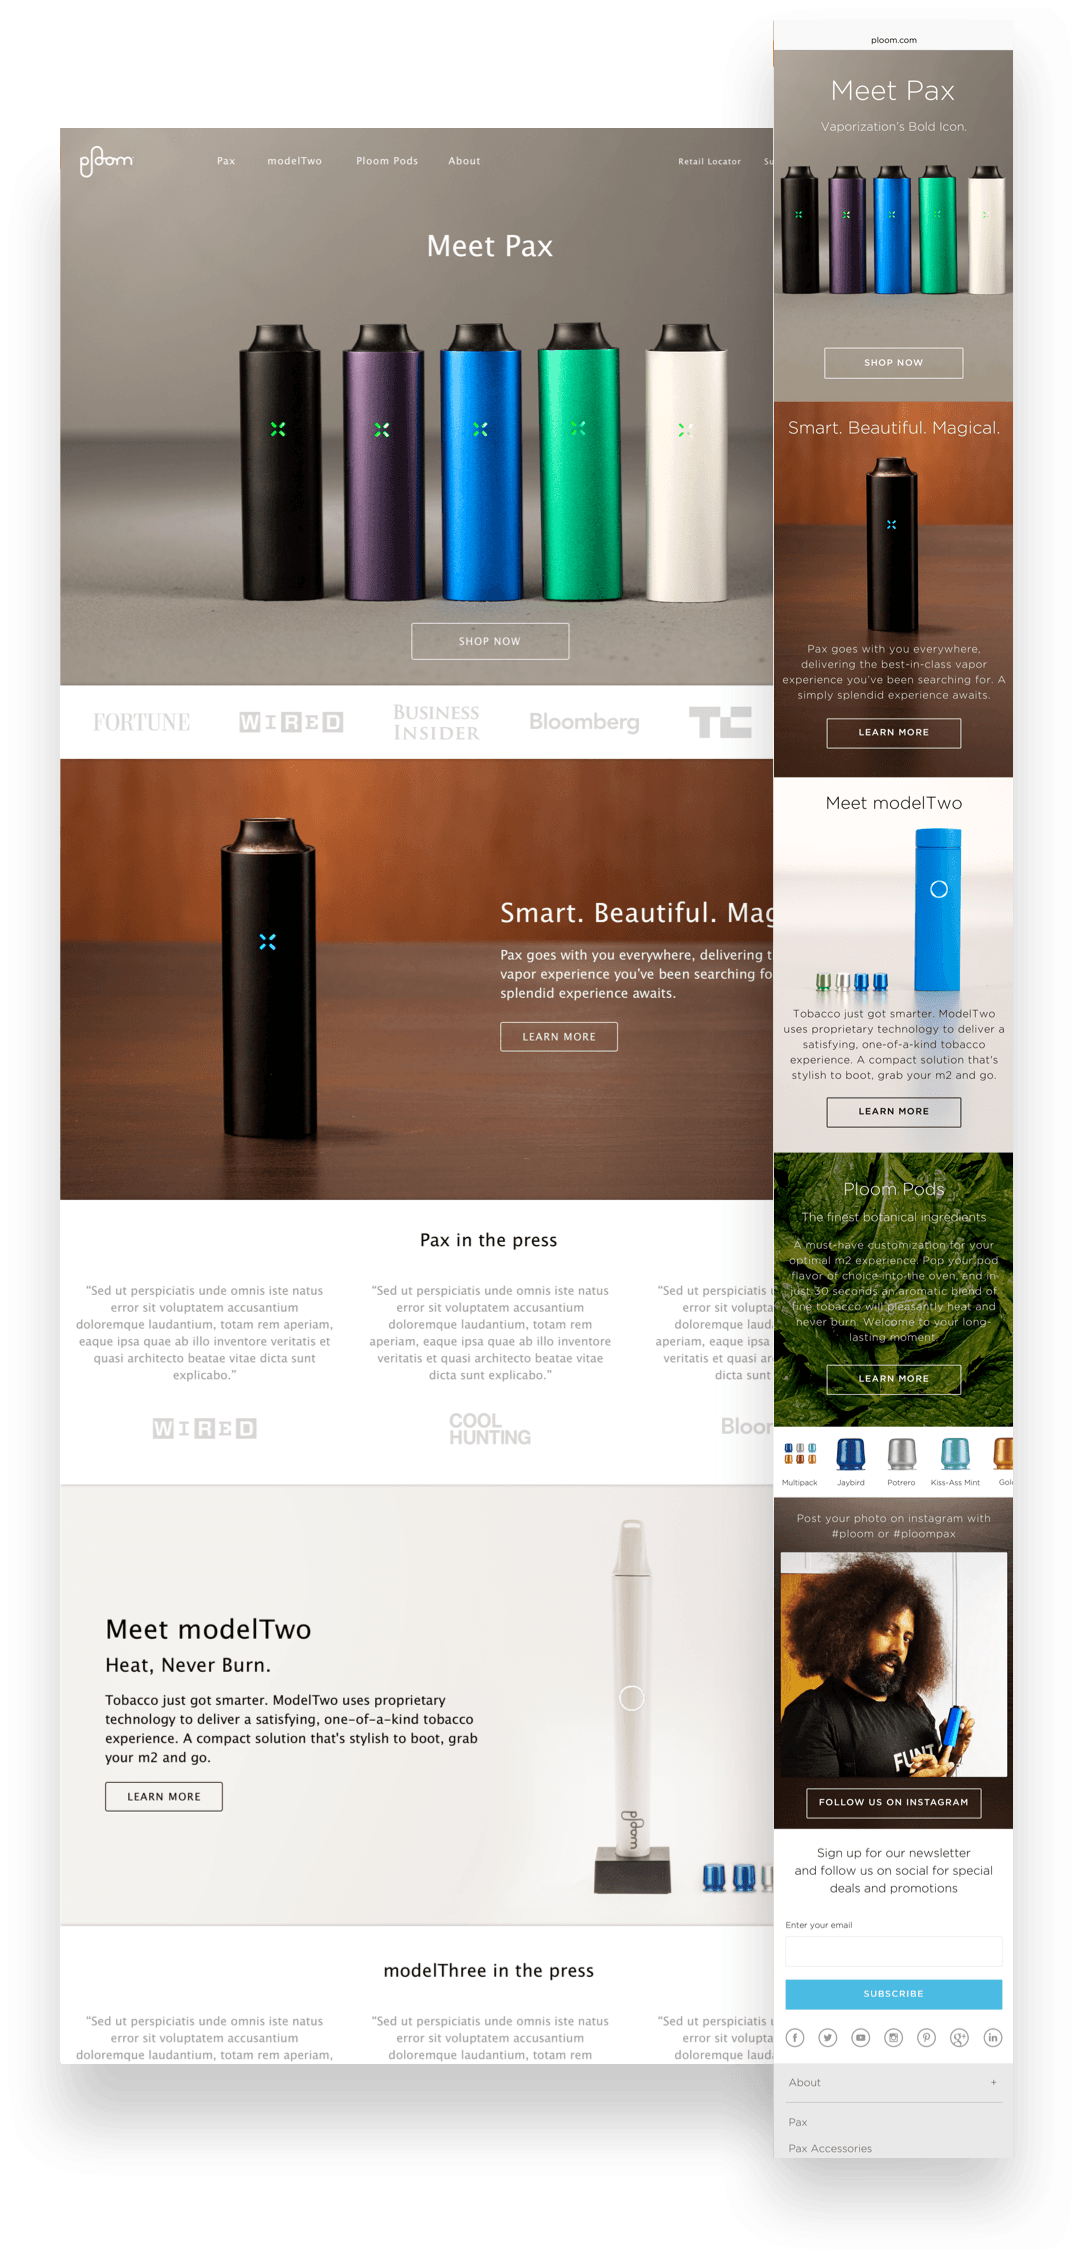 PAX Labs - The Solution Image